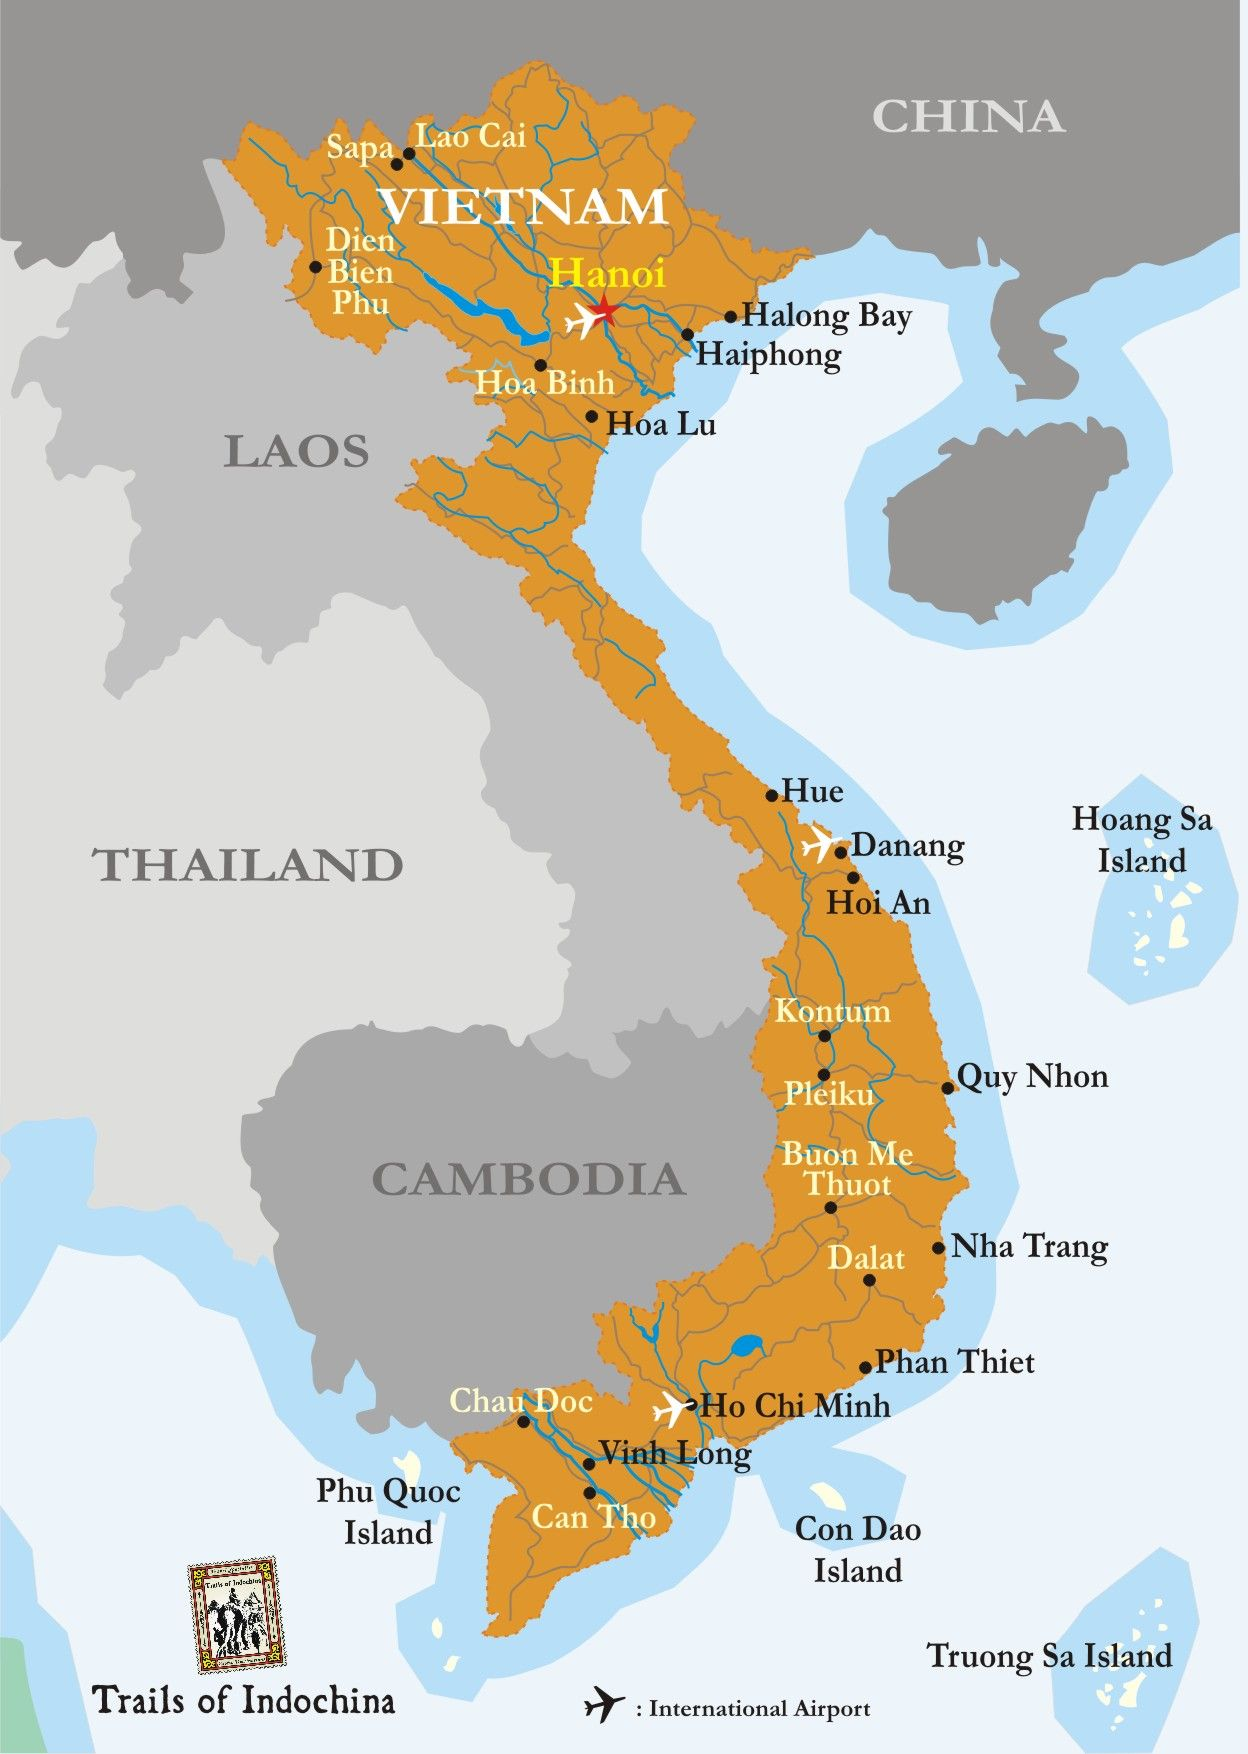 Vietnam Map - Trails of Indochina in 2019 | Vietnam map ... on sumatra map, taiwan map, manchuria map, south america map, malay peninsula map, cambodia map, vietnam map, indonesia map, malay archipelago map, west africa map, irrawaddy river map, philippines map, ottoman empire map, indian ocean map, world map, china map, burma map, java map, thailand map, asia map,